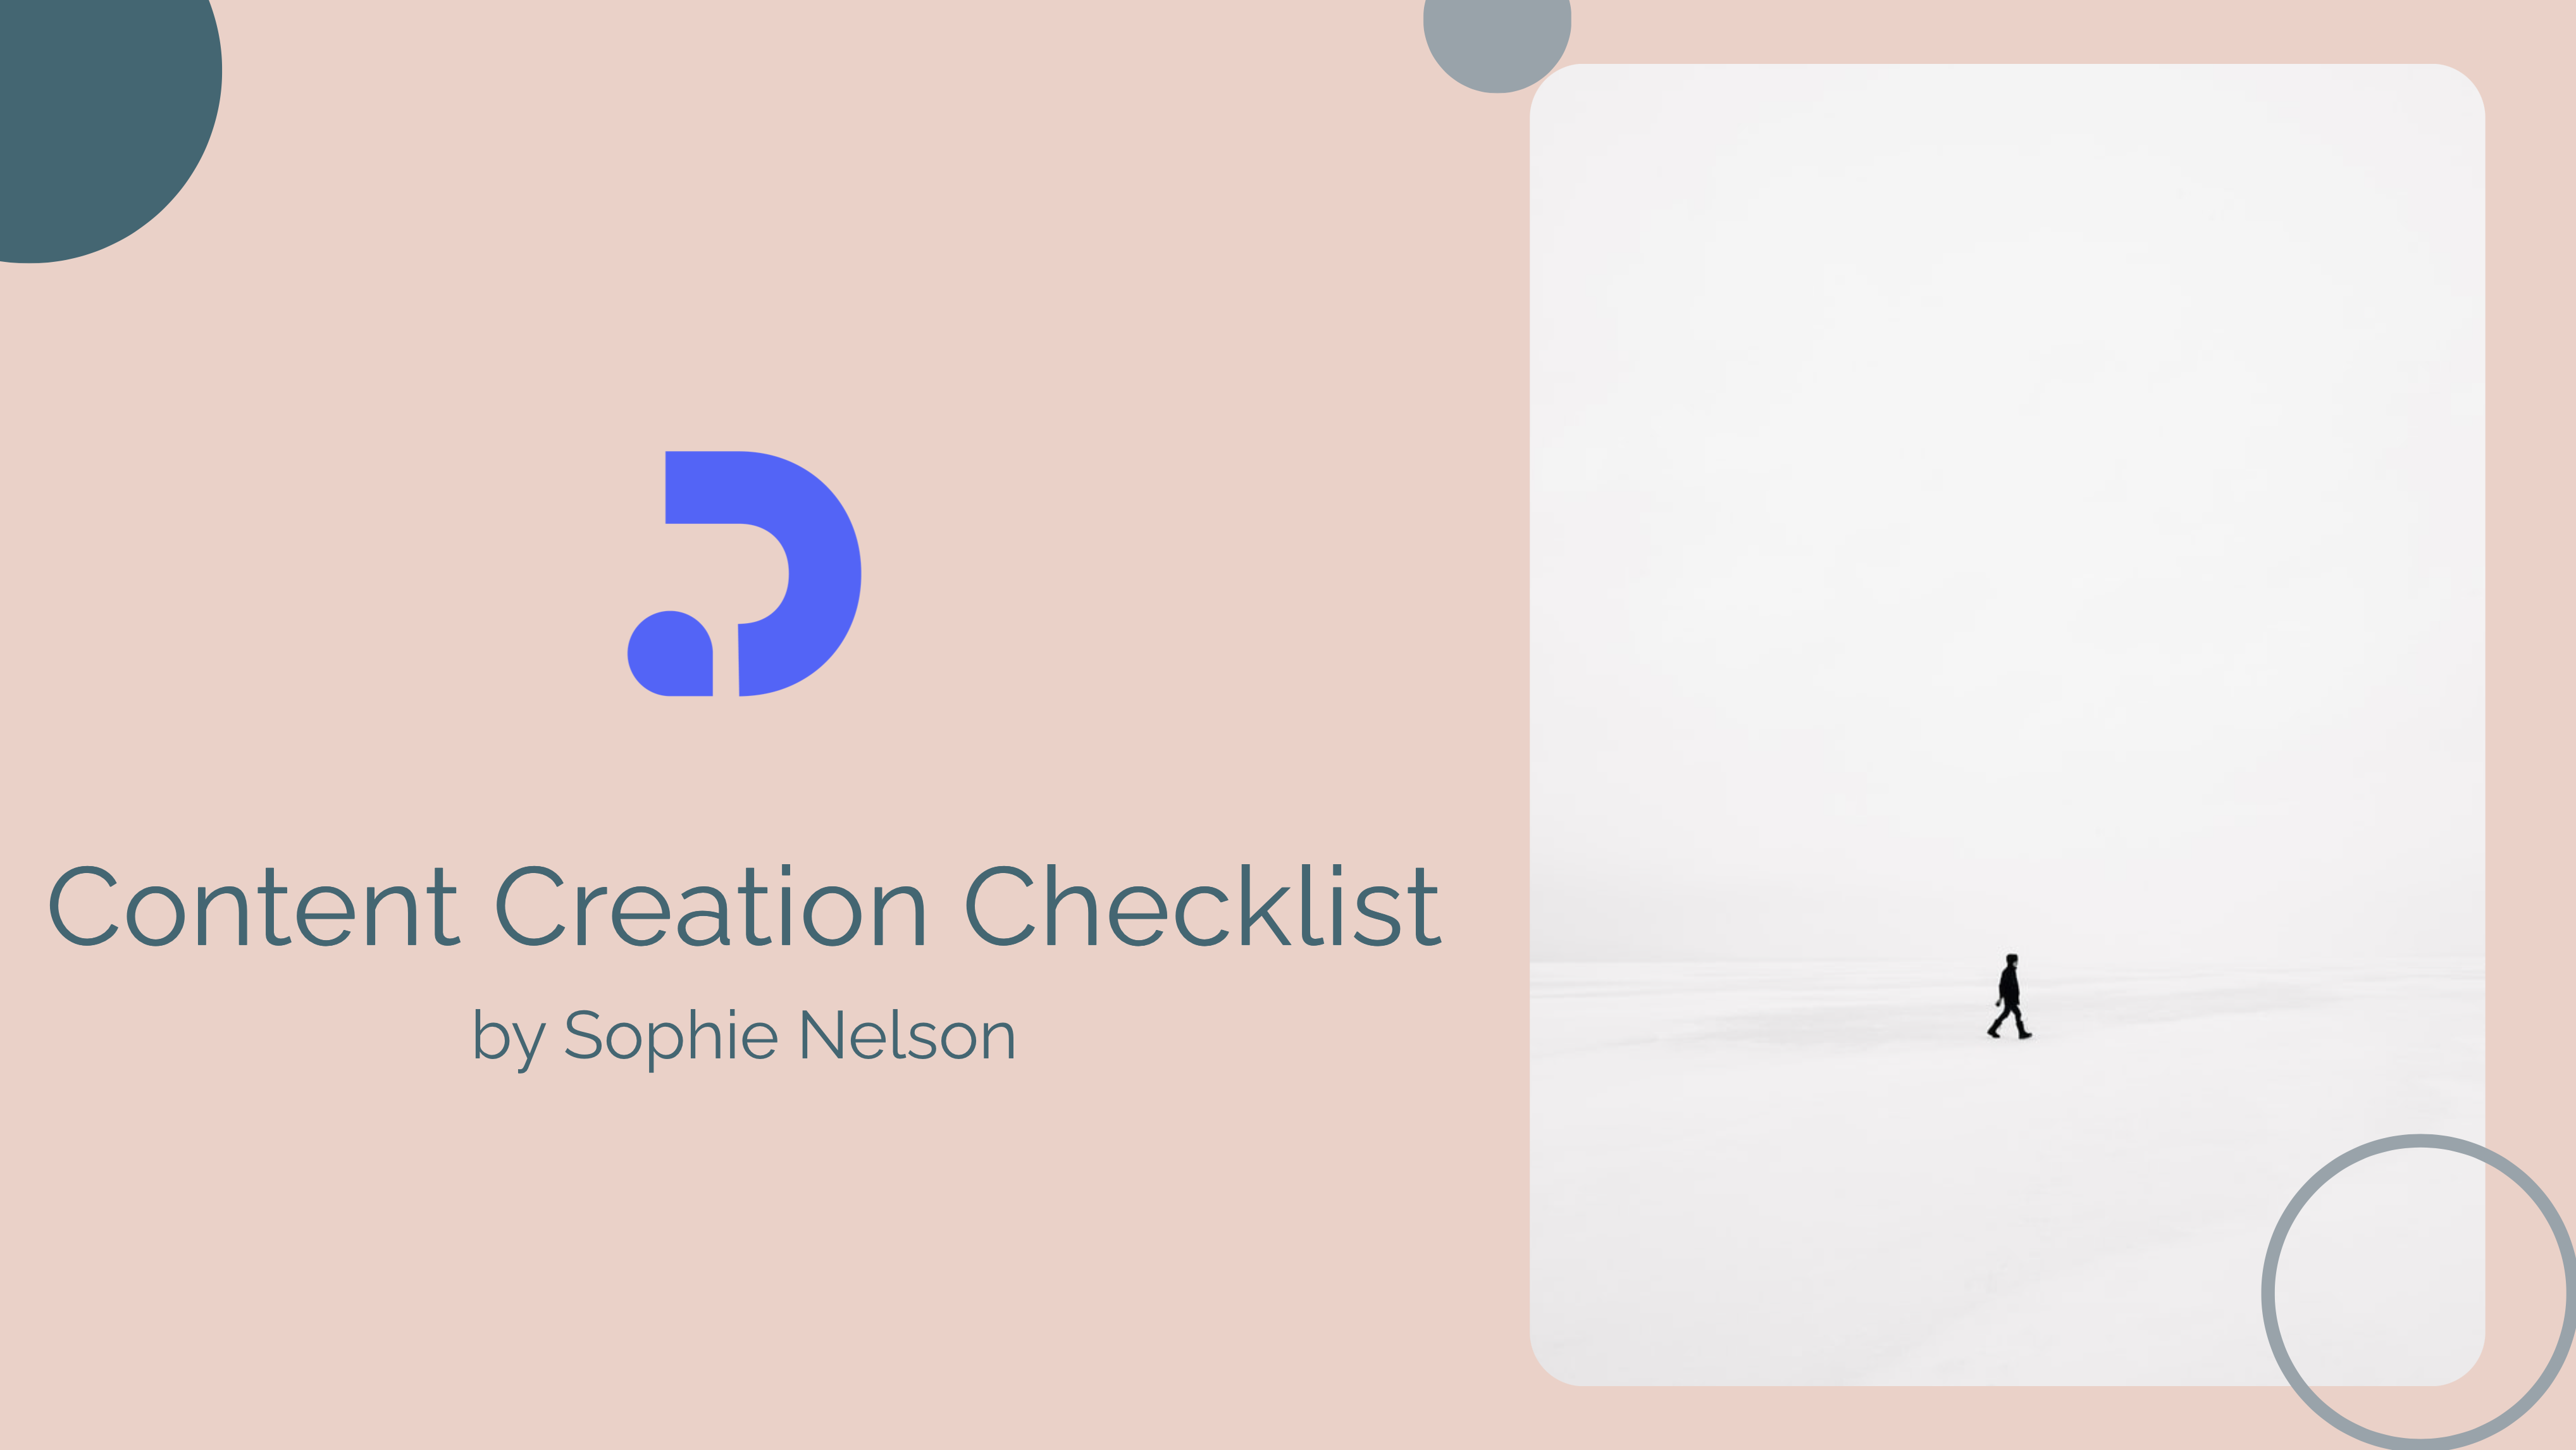 By using this checklist template, you can kickstart a valuable resource library for your audience. These kinds of documents are a great way to attract your ideal customers and get their contact information as a lead generation process. Checklists can be social media engagement checklist, minimalist branding checklist, email marketing checklist and the list can go more...